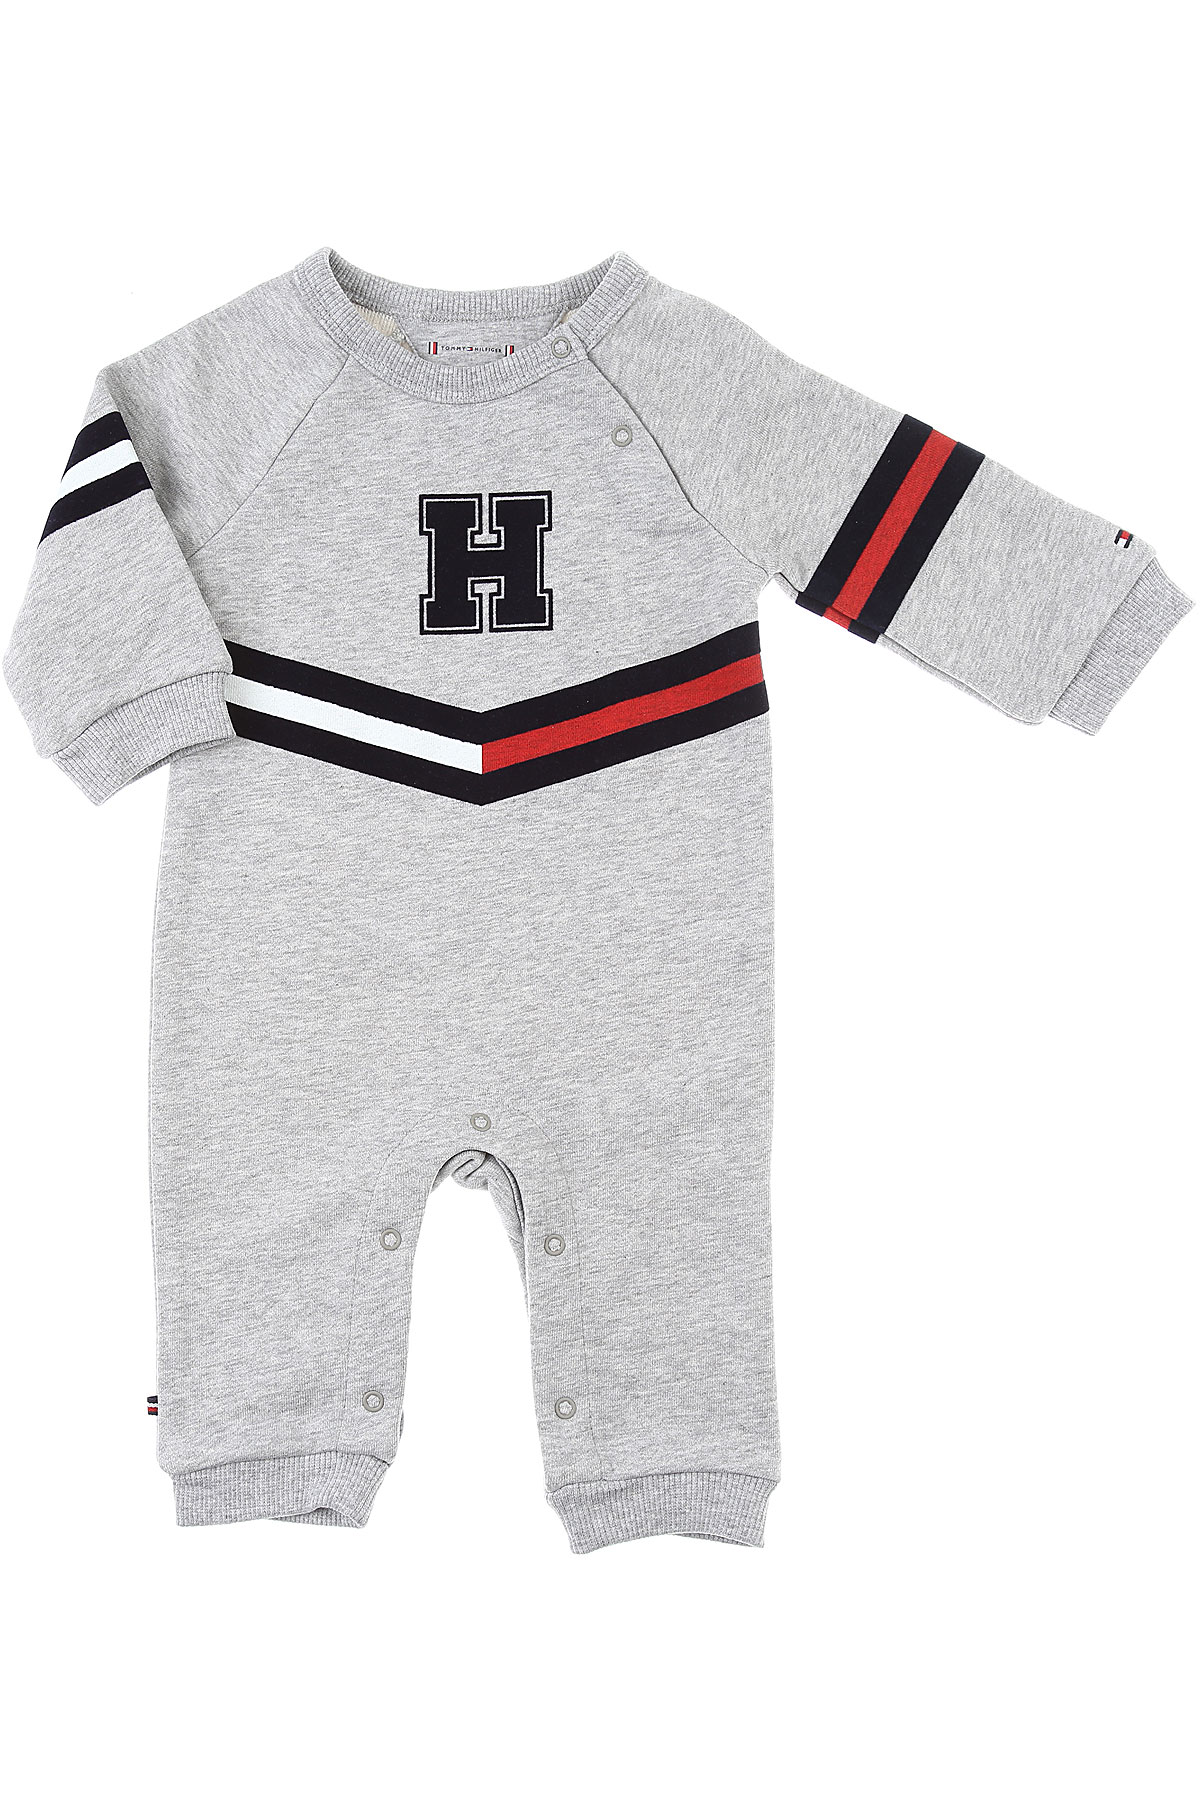 Tommy Hilfiger Baby Bodysuits & Onesies for Boys On Sale, Grey, Cotton, 2019, 1M 6M